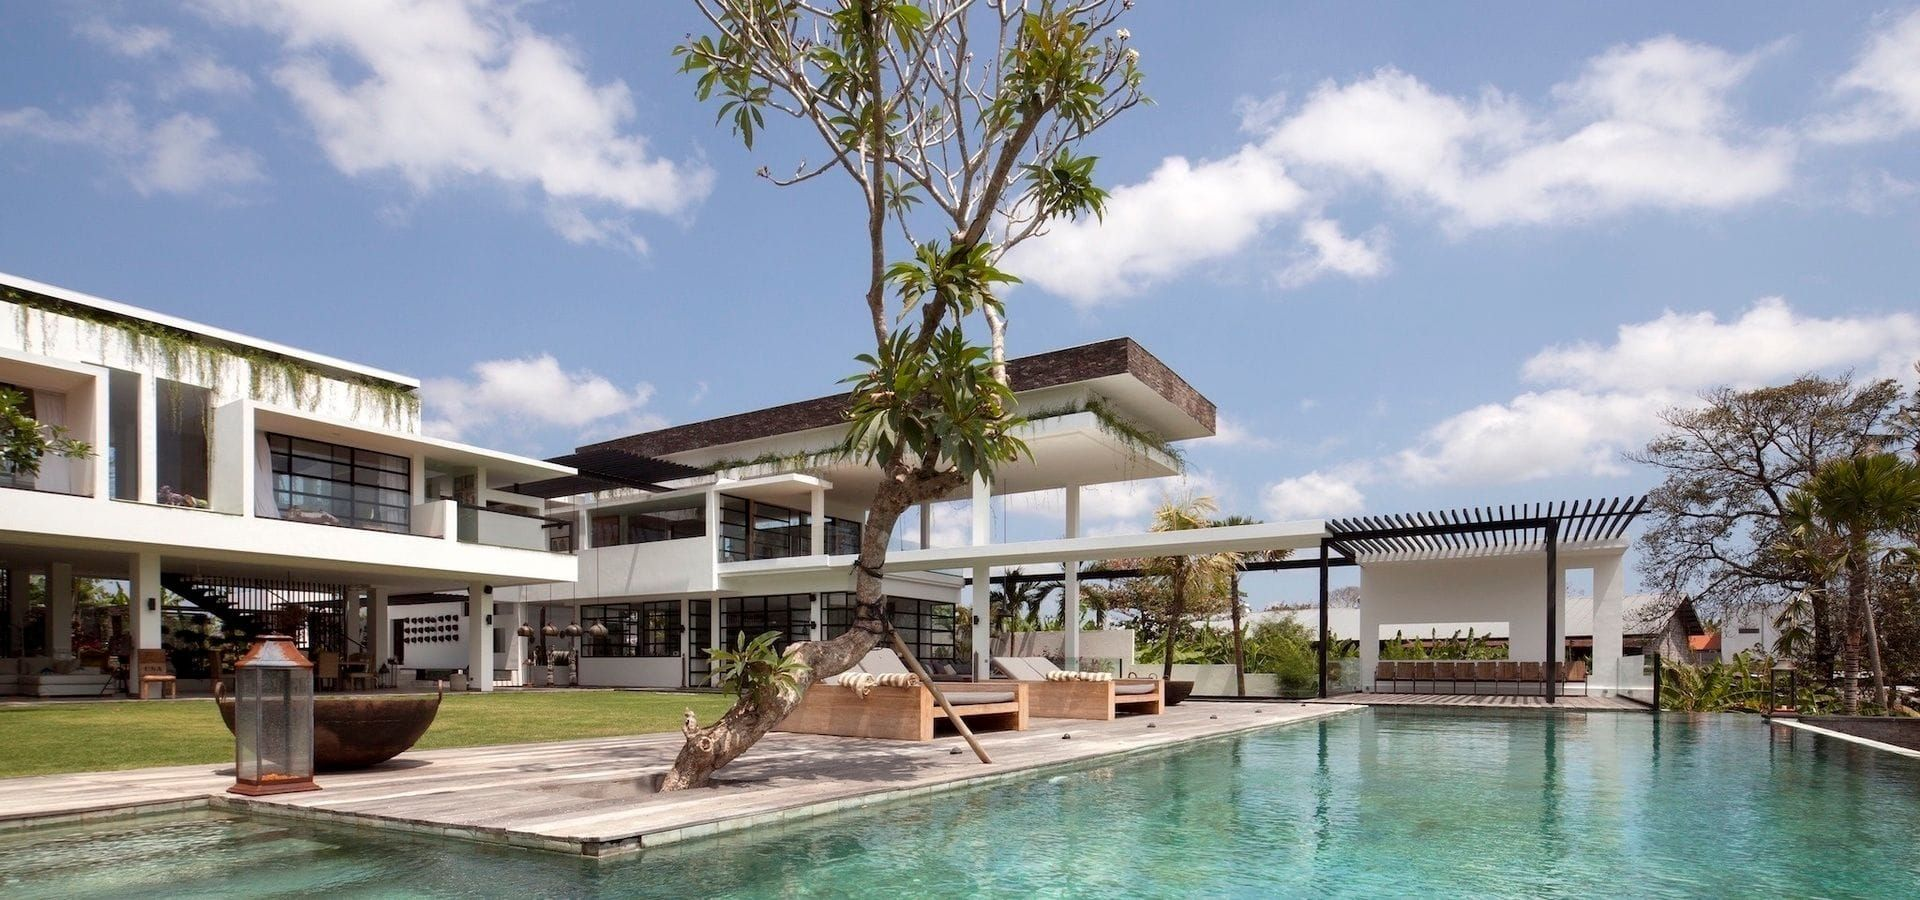 10 Best Luxury Villas In Bali